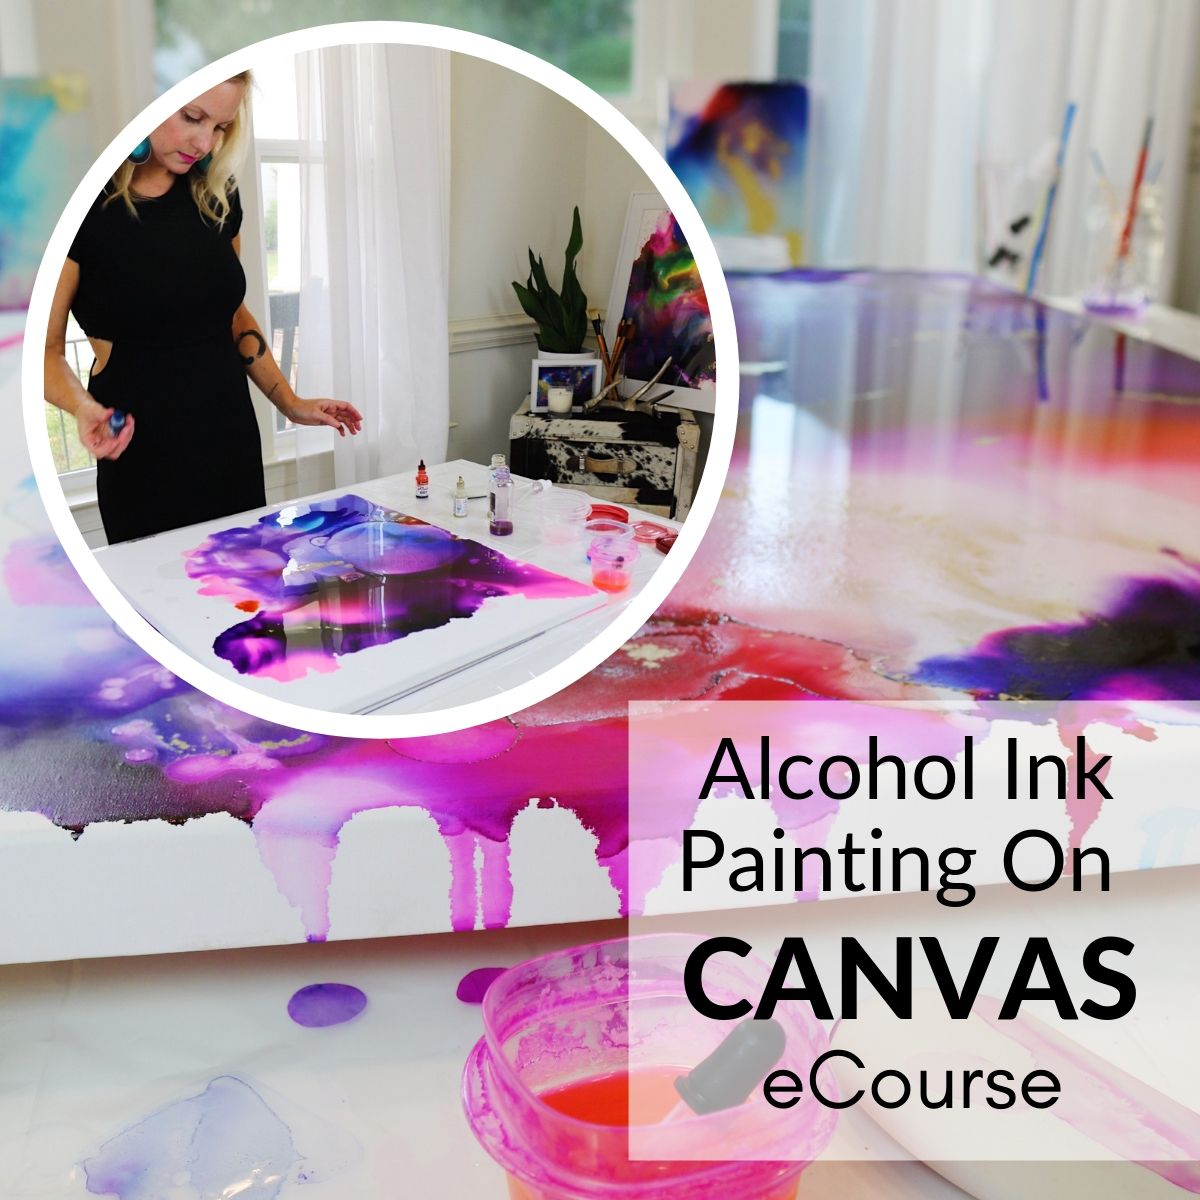 alochol ink courses with jenna webb art.jpg